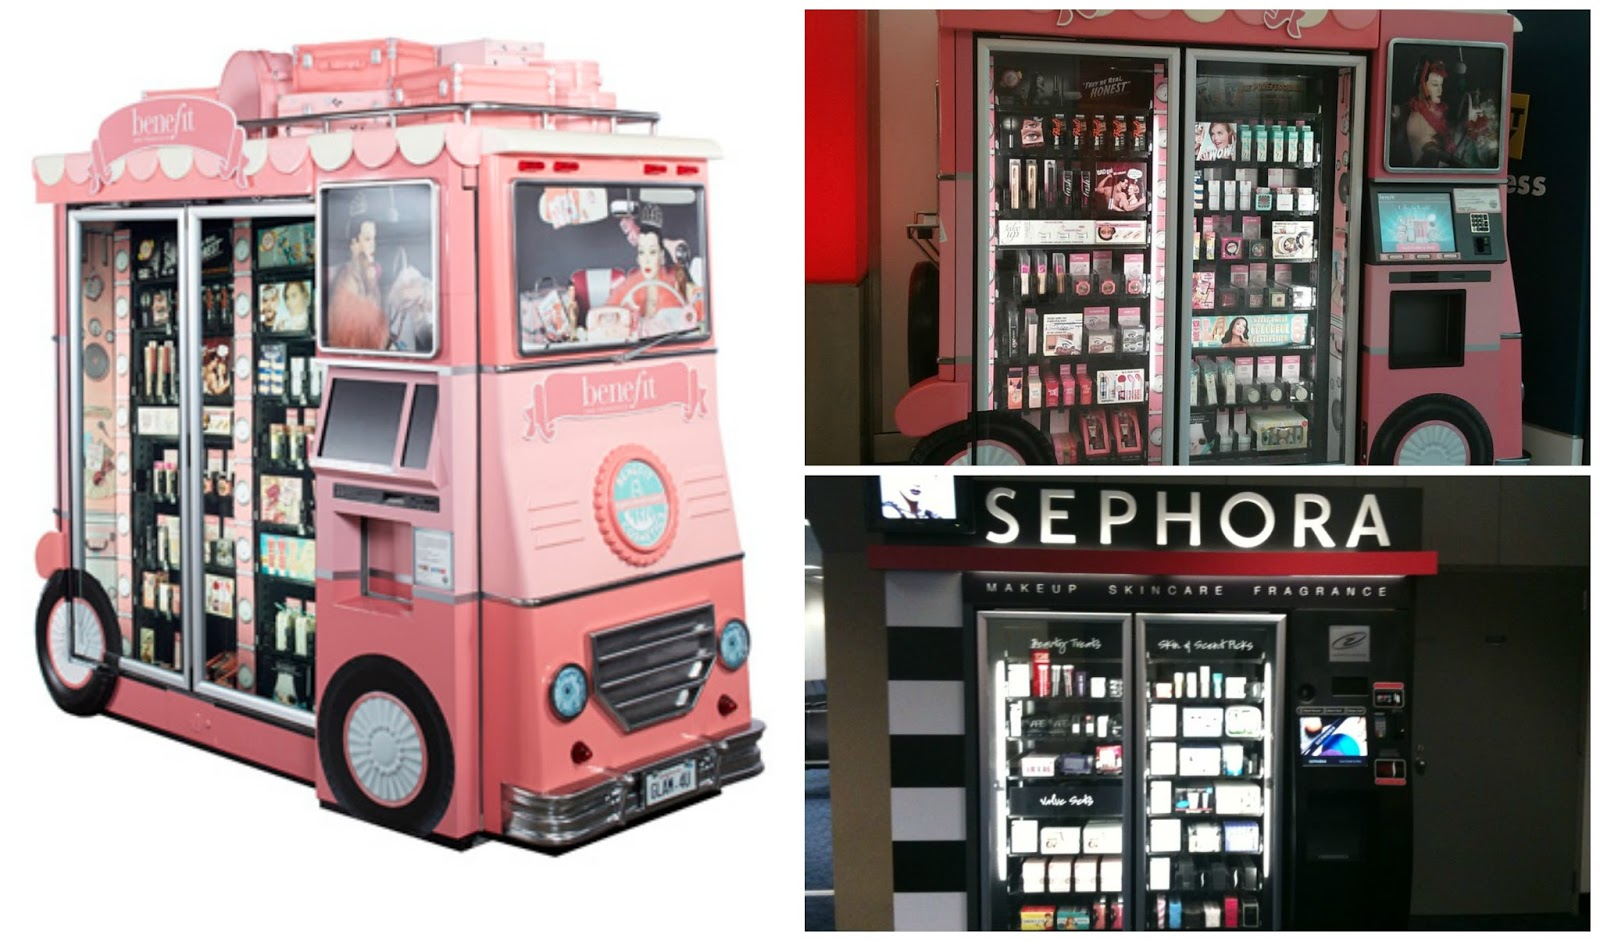 Benefit Cosmetics Vending Machine.jpg